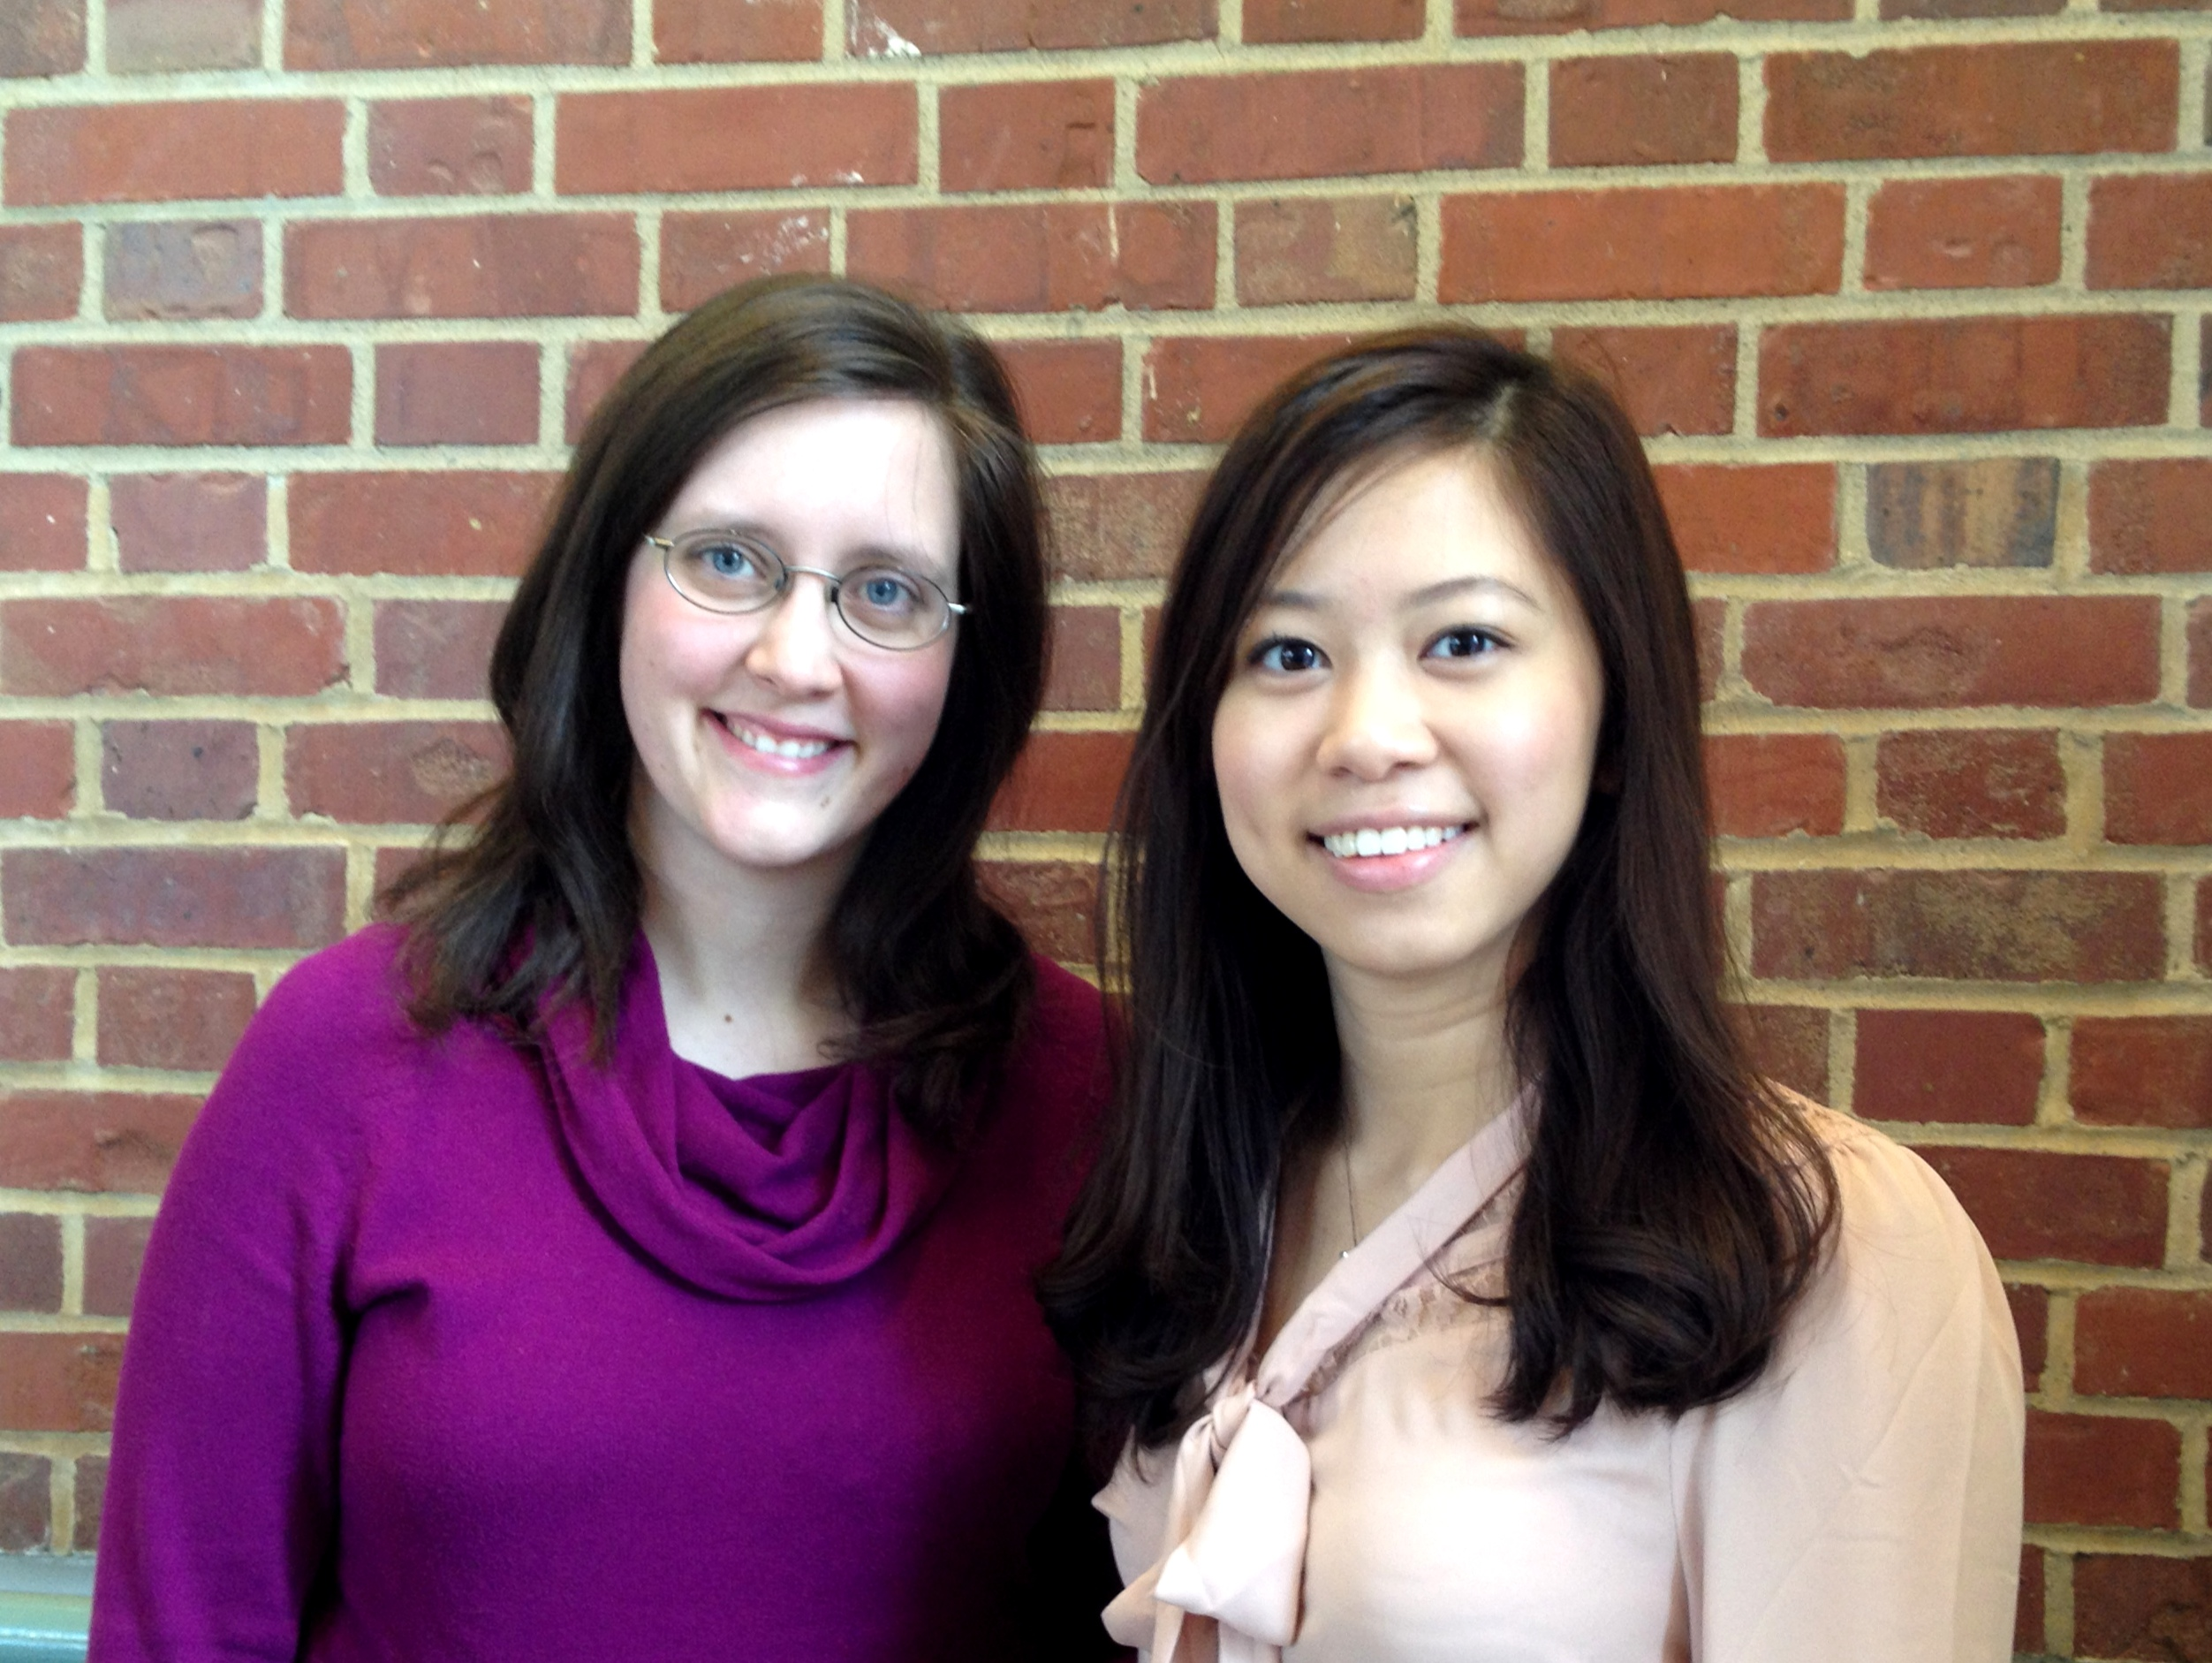 (From left) Rose Walsh and Yen Ven (Vivian) Loh.